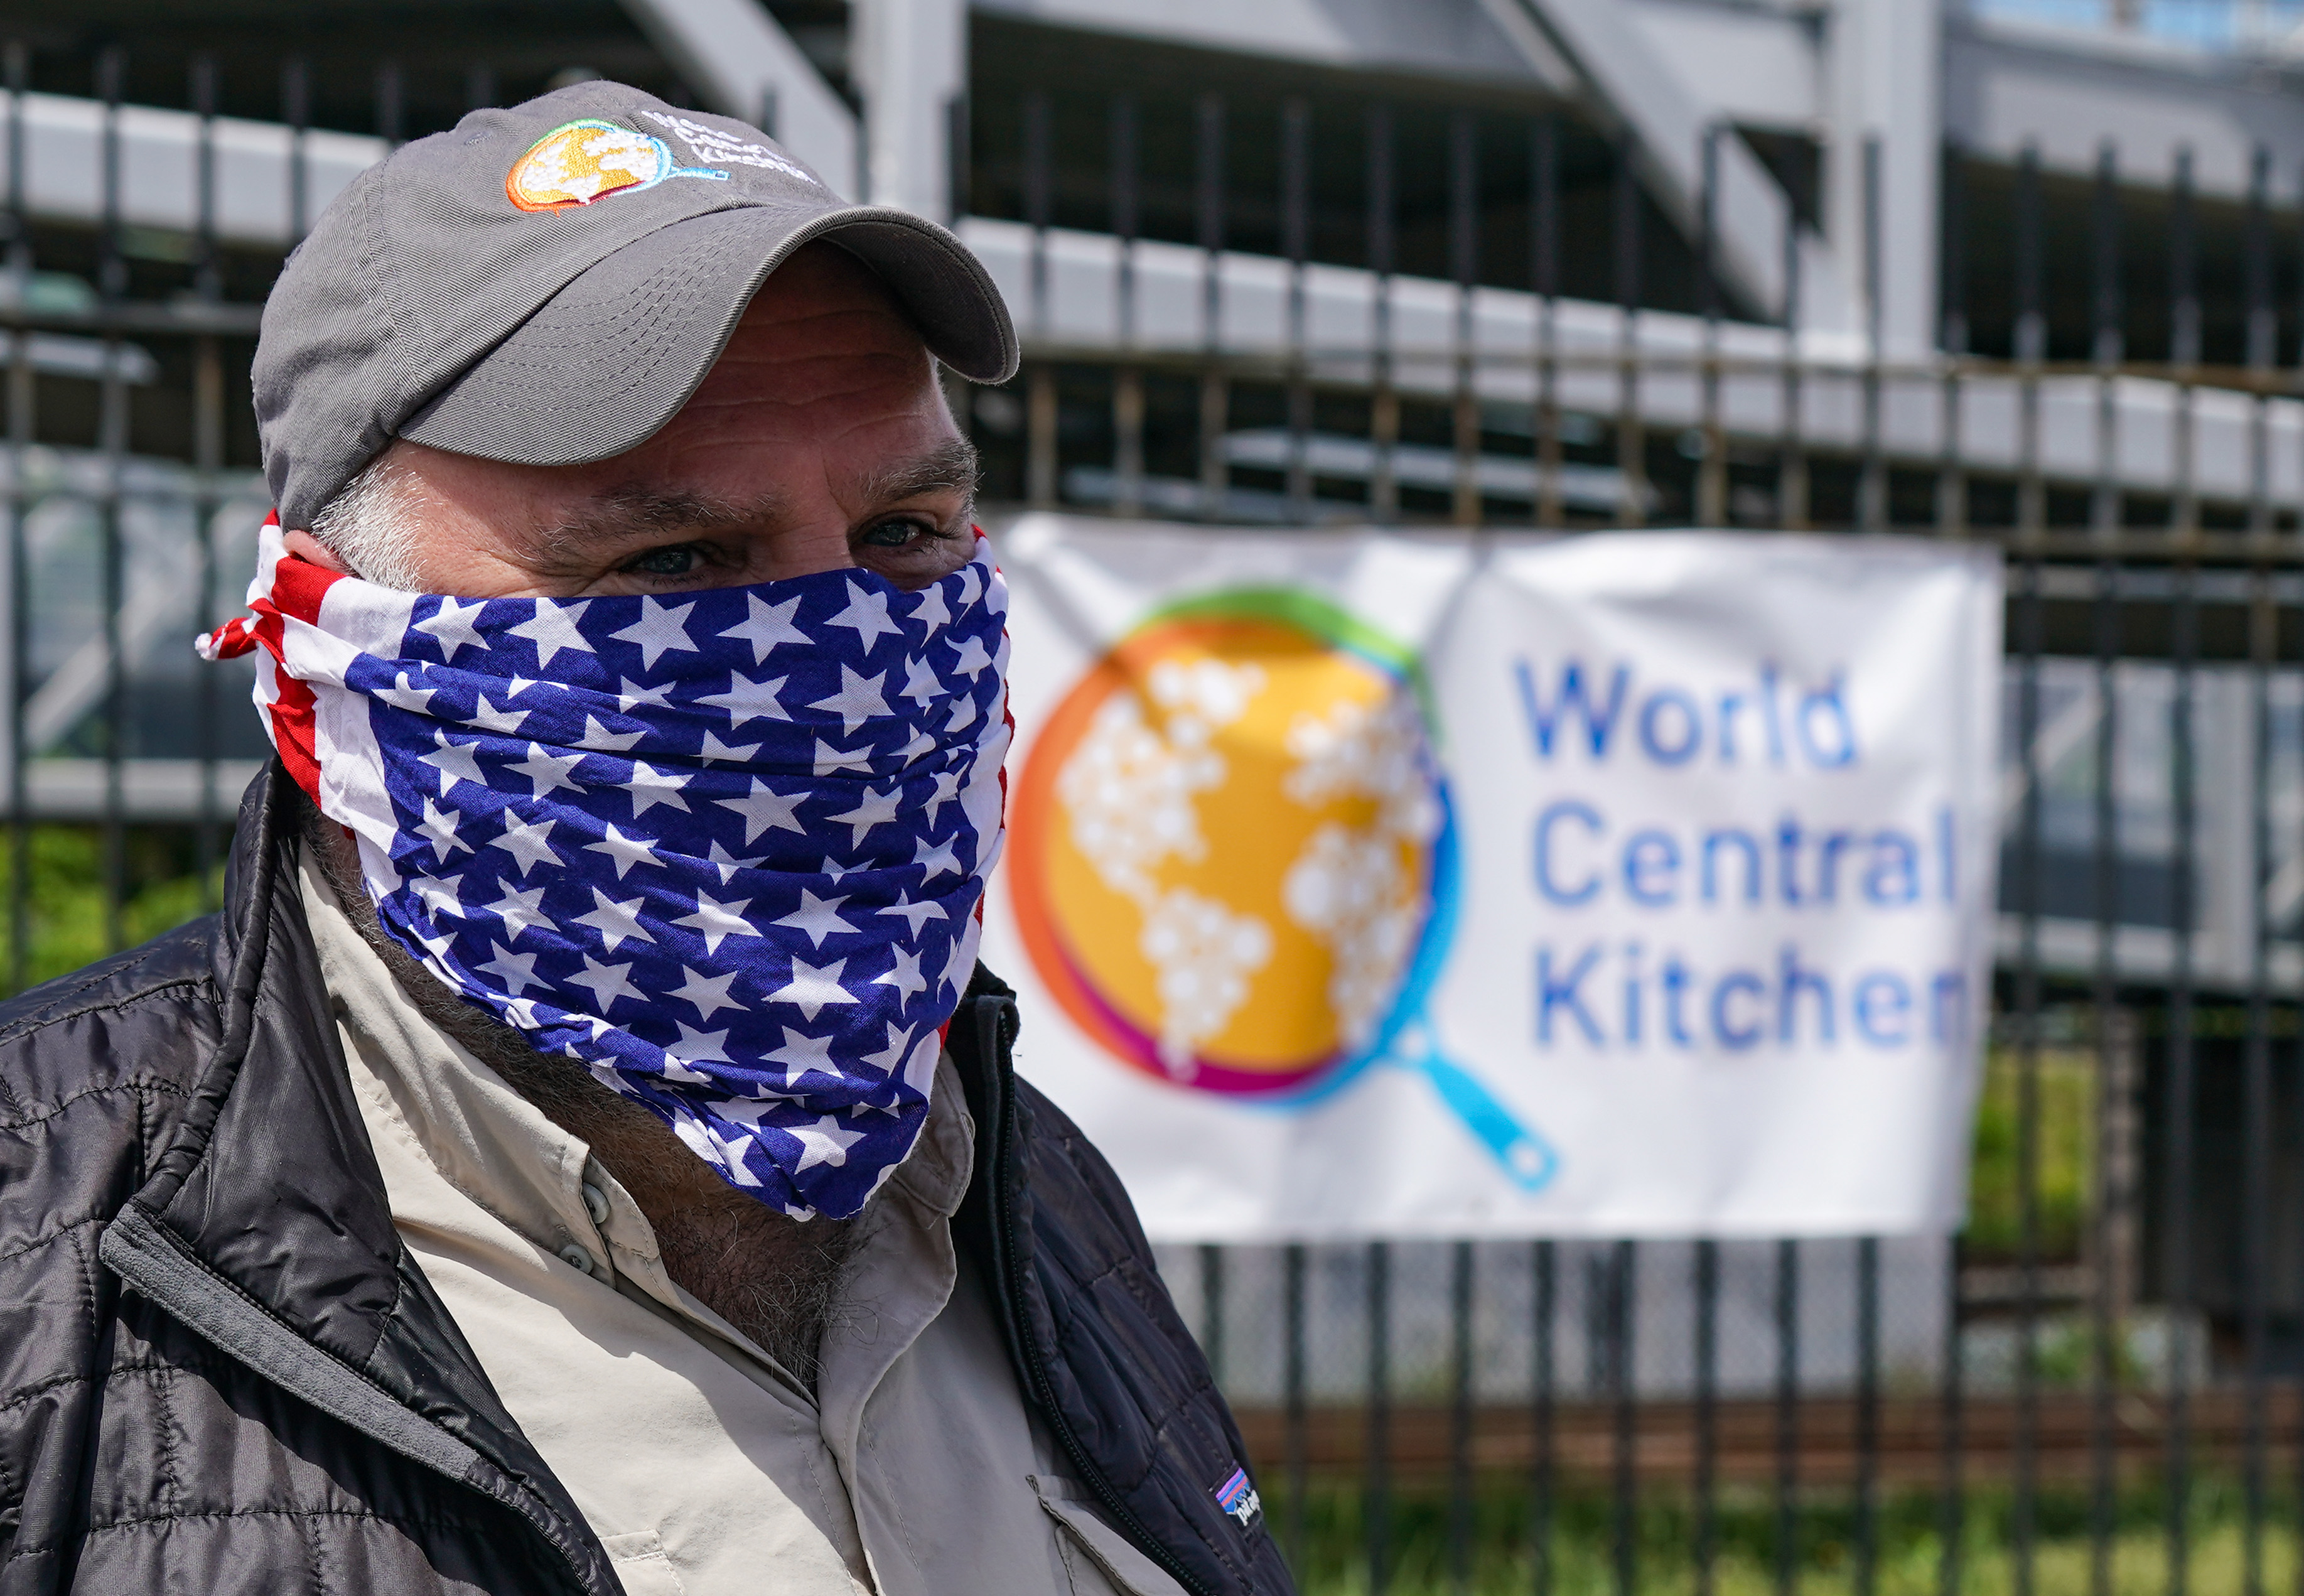 World Central Kitchen Distributes Meals In Baltimore Amid Coronavirus Pandemic